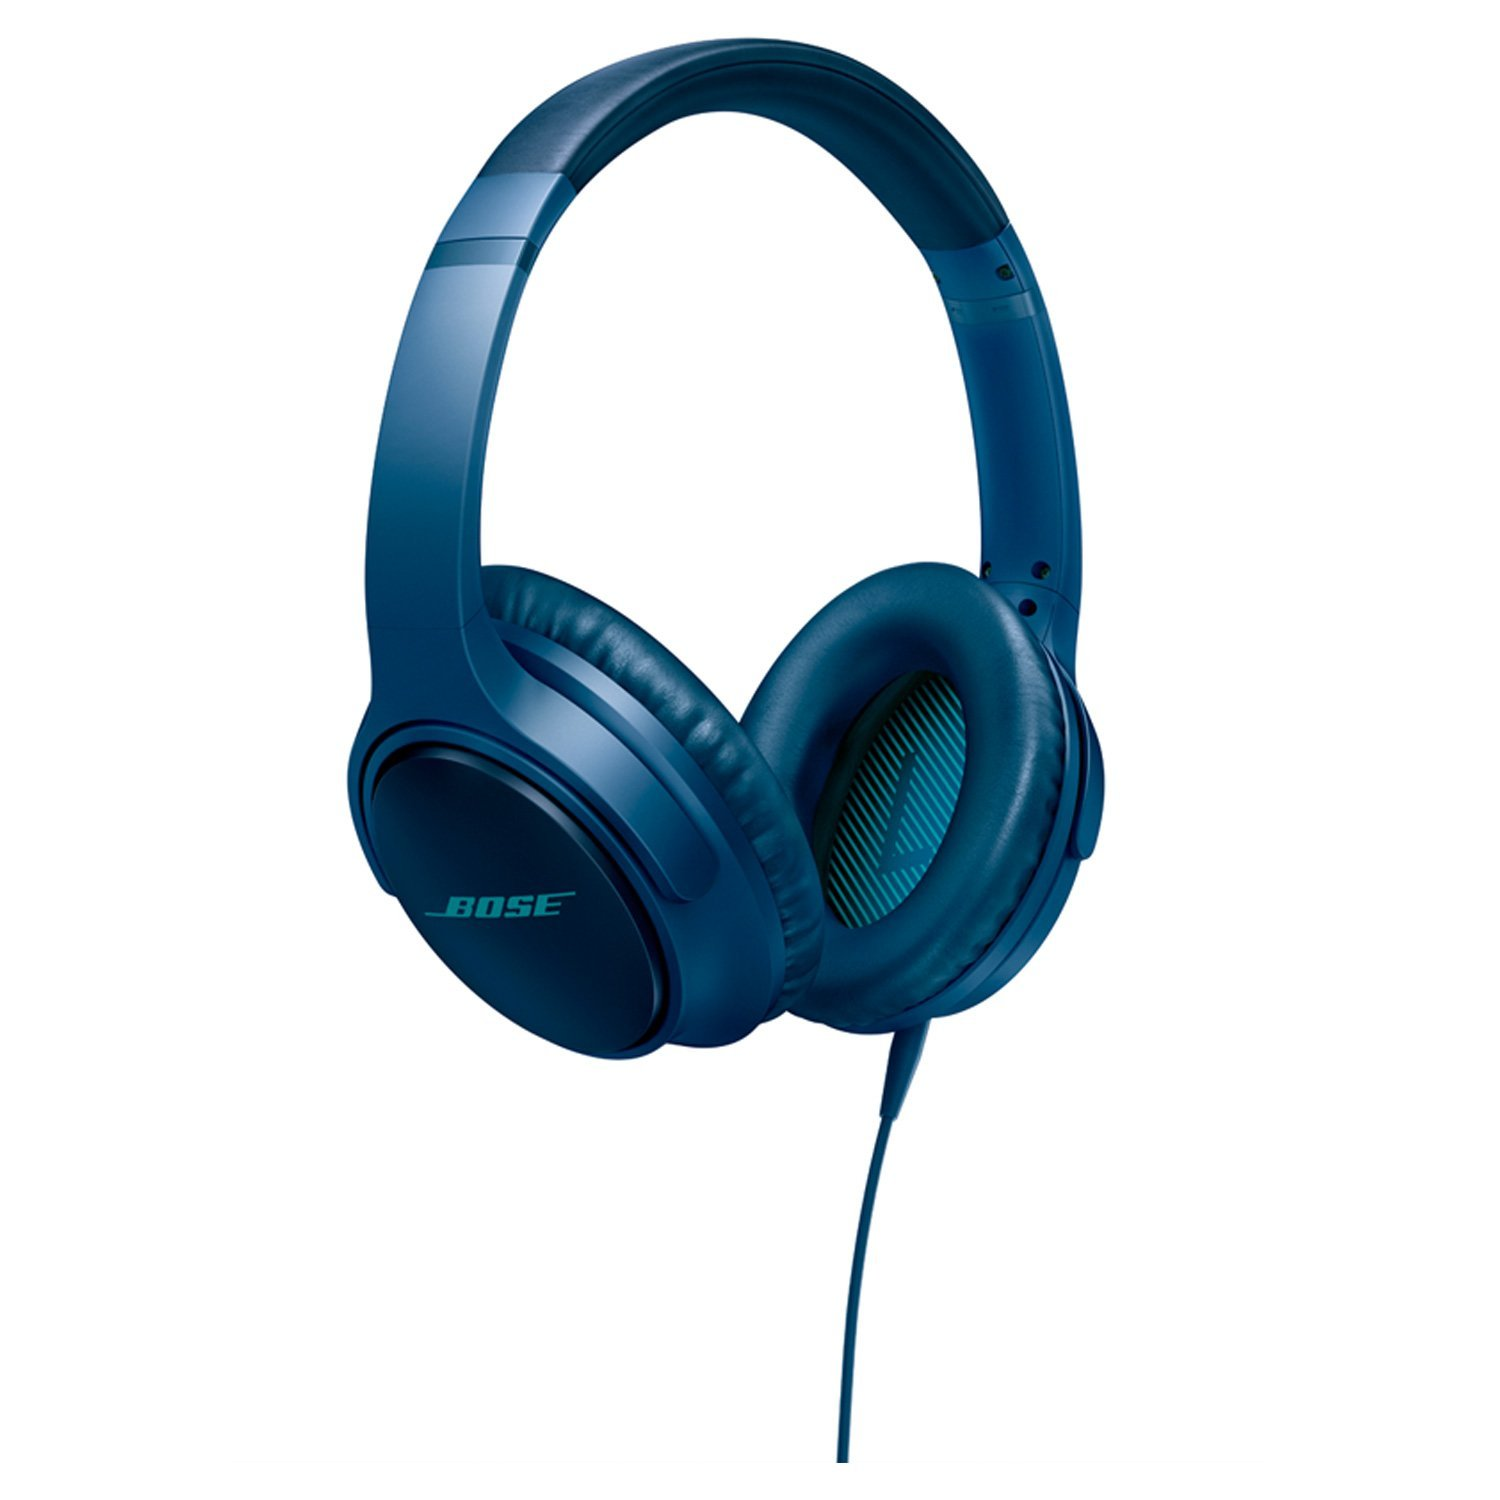 The [Bose SoundTrue Wired Headphones](https://www.amazon.com/dp/B0117RFZ40?tag=toolstoysdeals-20) for Apple devices are a less expensive, more comfortable option for audio on the go.